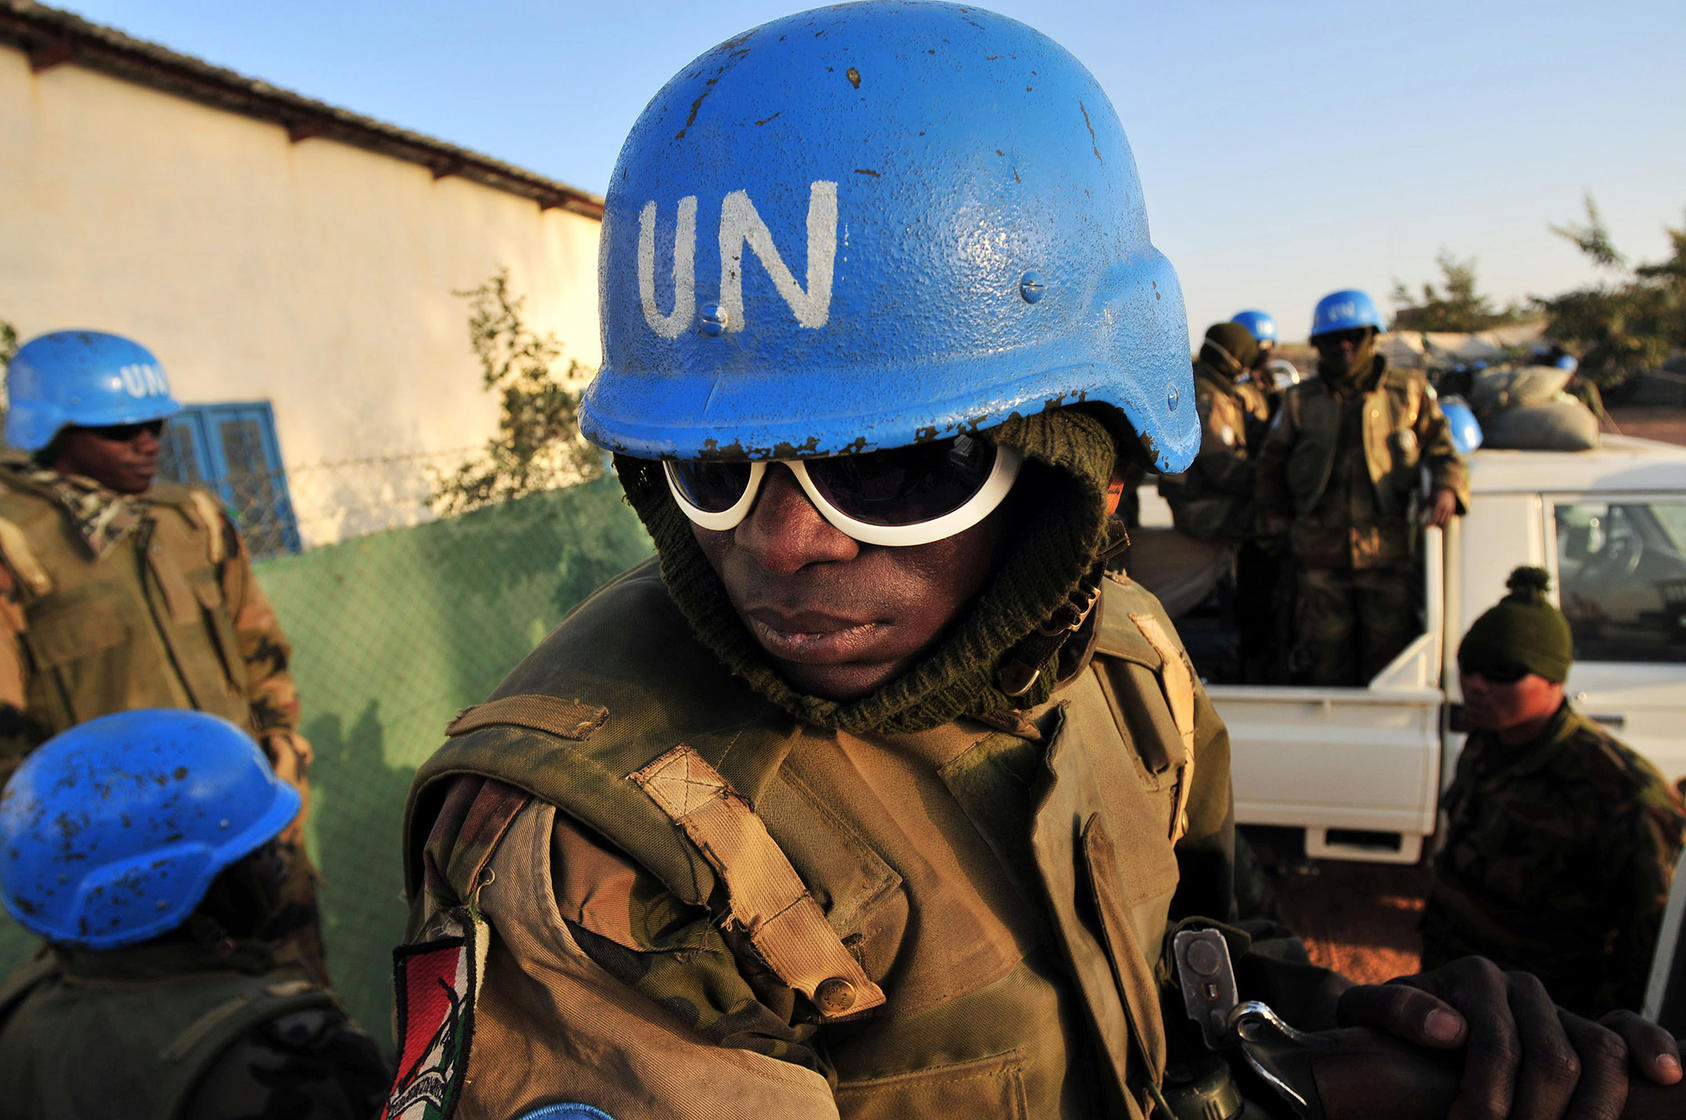 Nigerian soldiers with the United Nations peacekeeping force in Darfur prepare to head out on patrol from their base in El Geneina, Sudan, on Feb. 26, 2008. (Lynsey Addario/The New York Times)